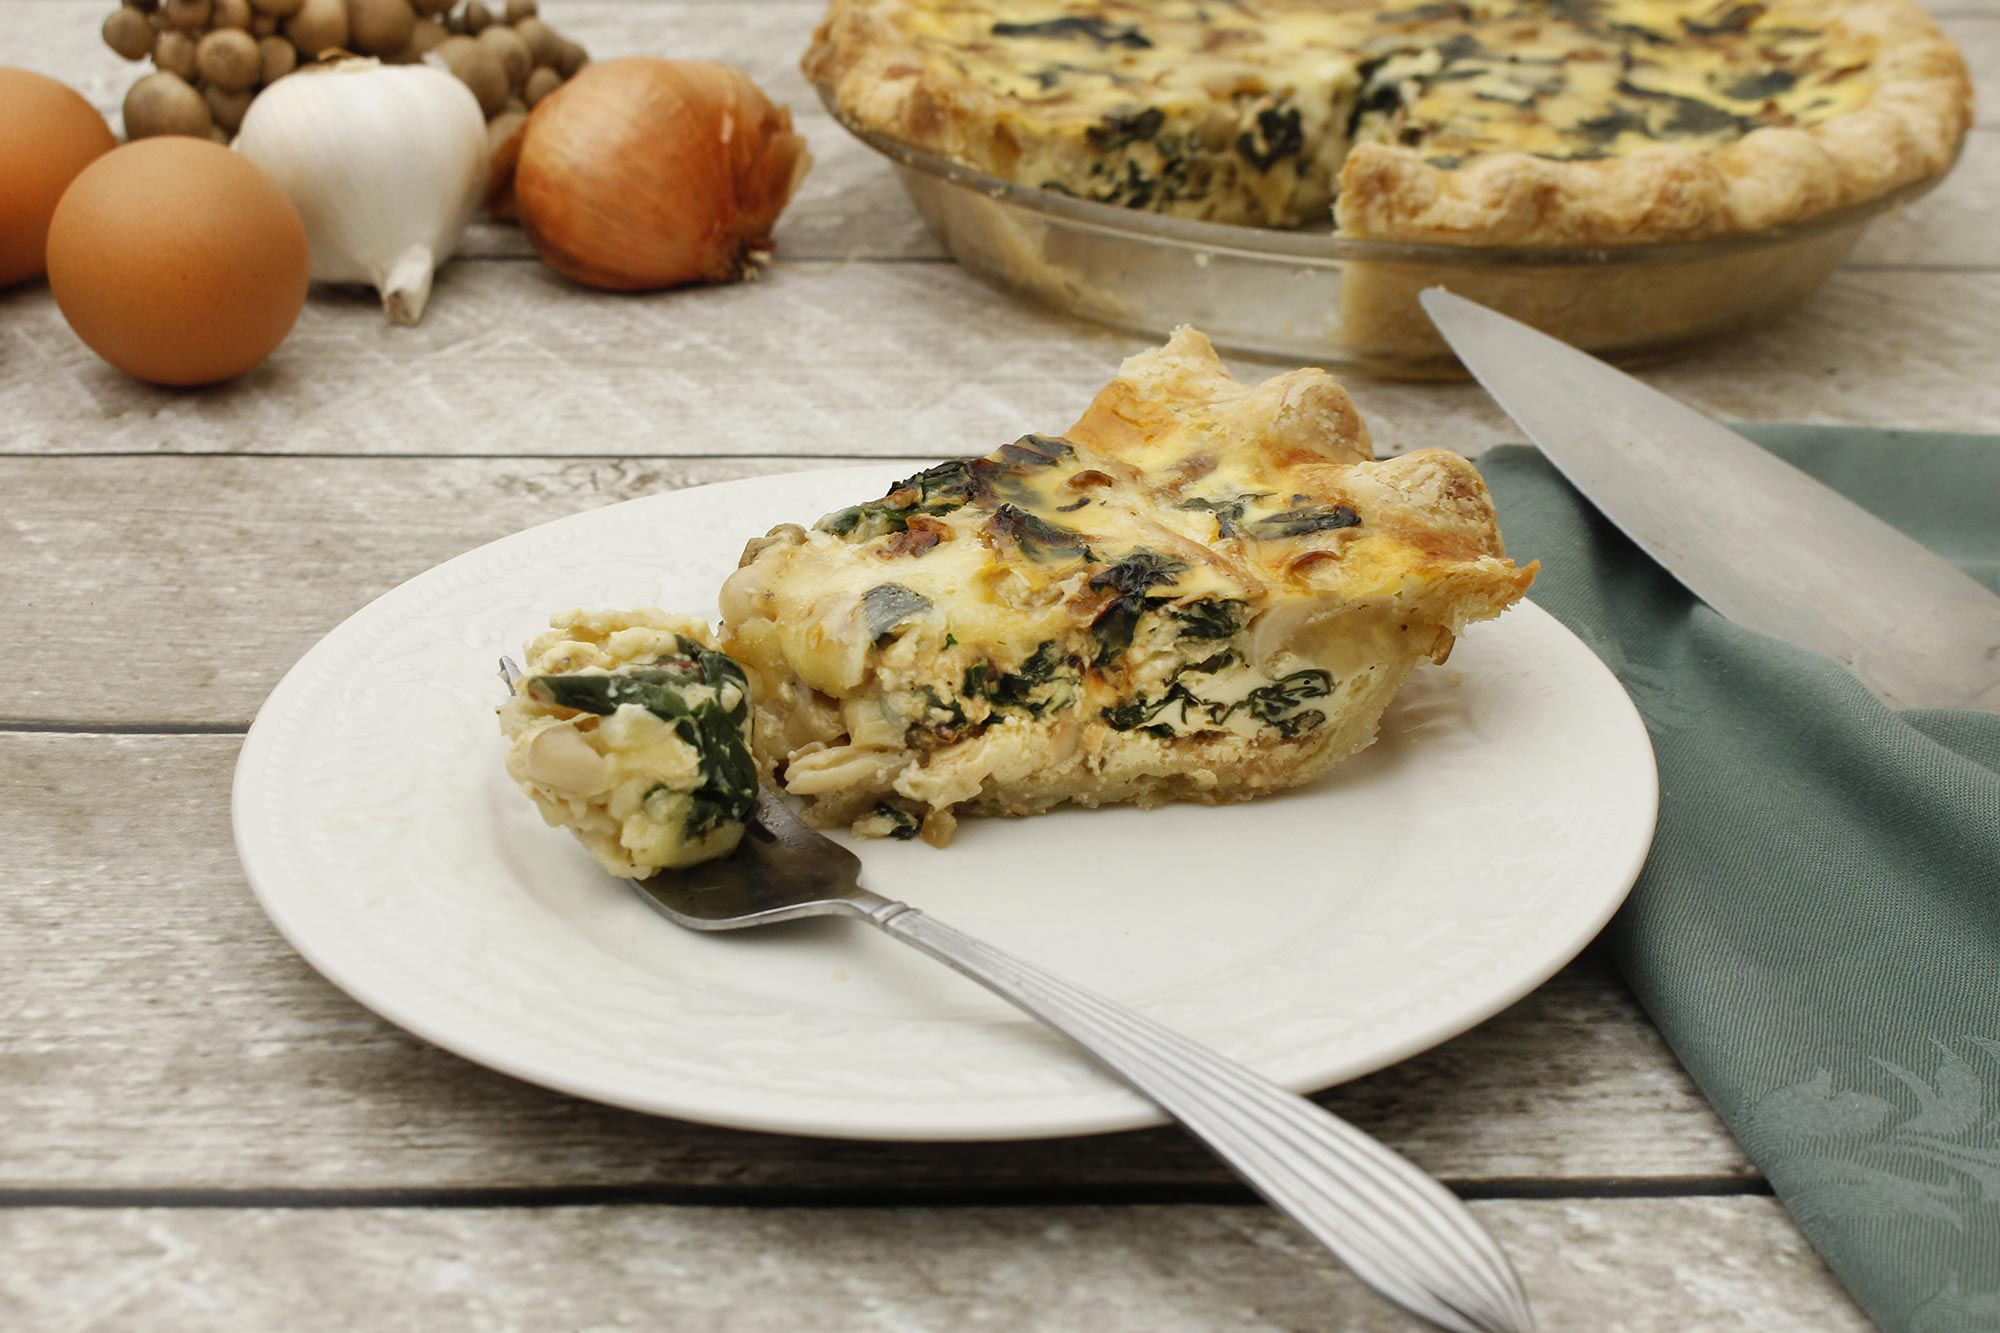 Caramelized Shallot, Chard and Mushroom Quiche